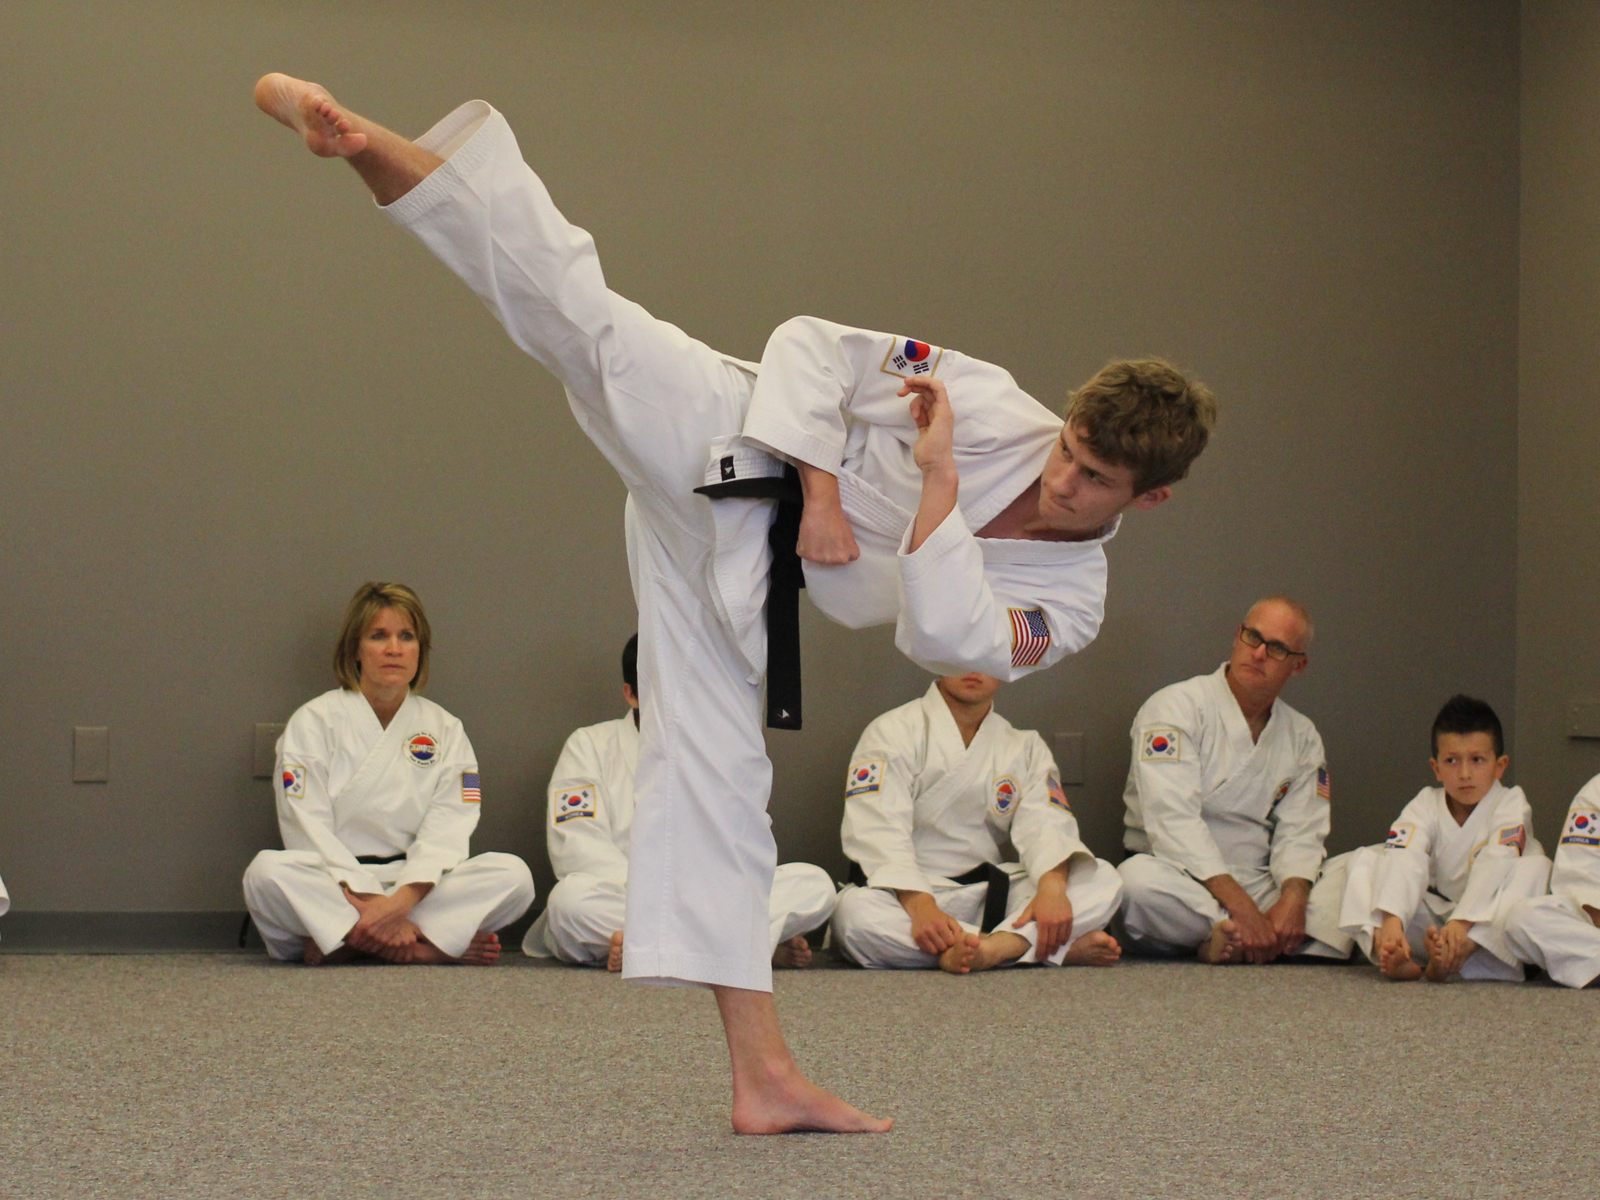 Overland Park Family & Adult Karate